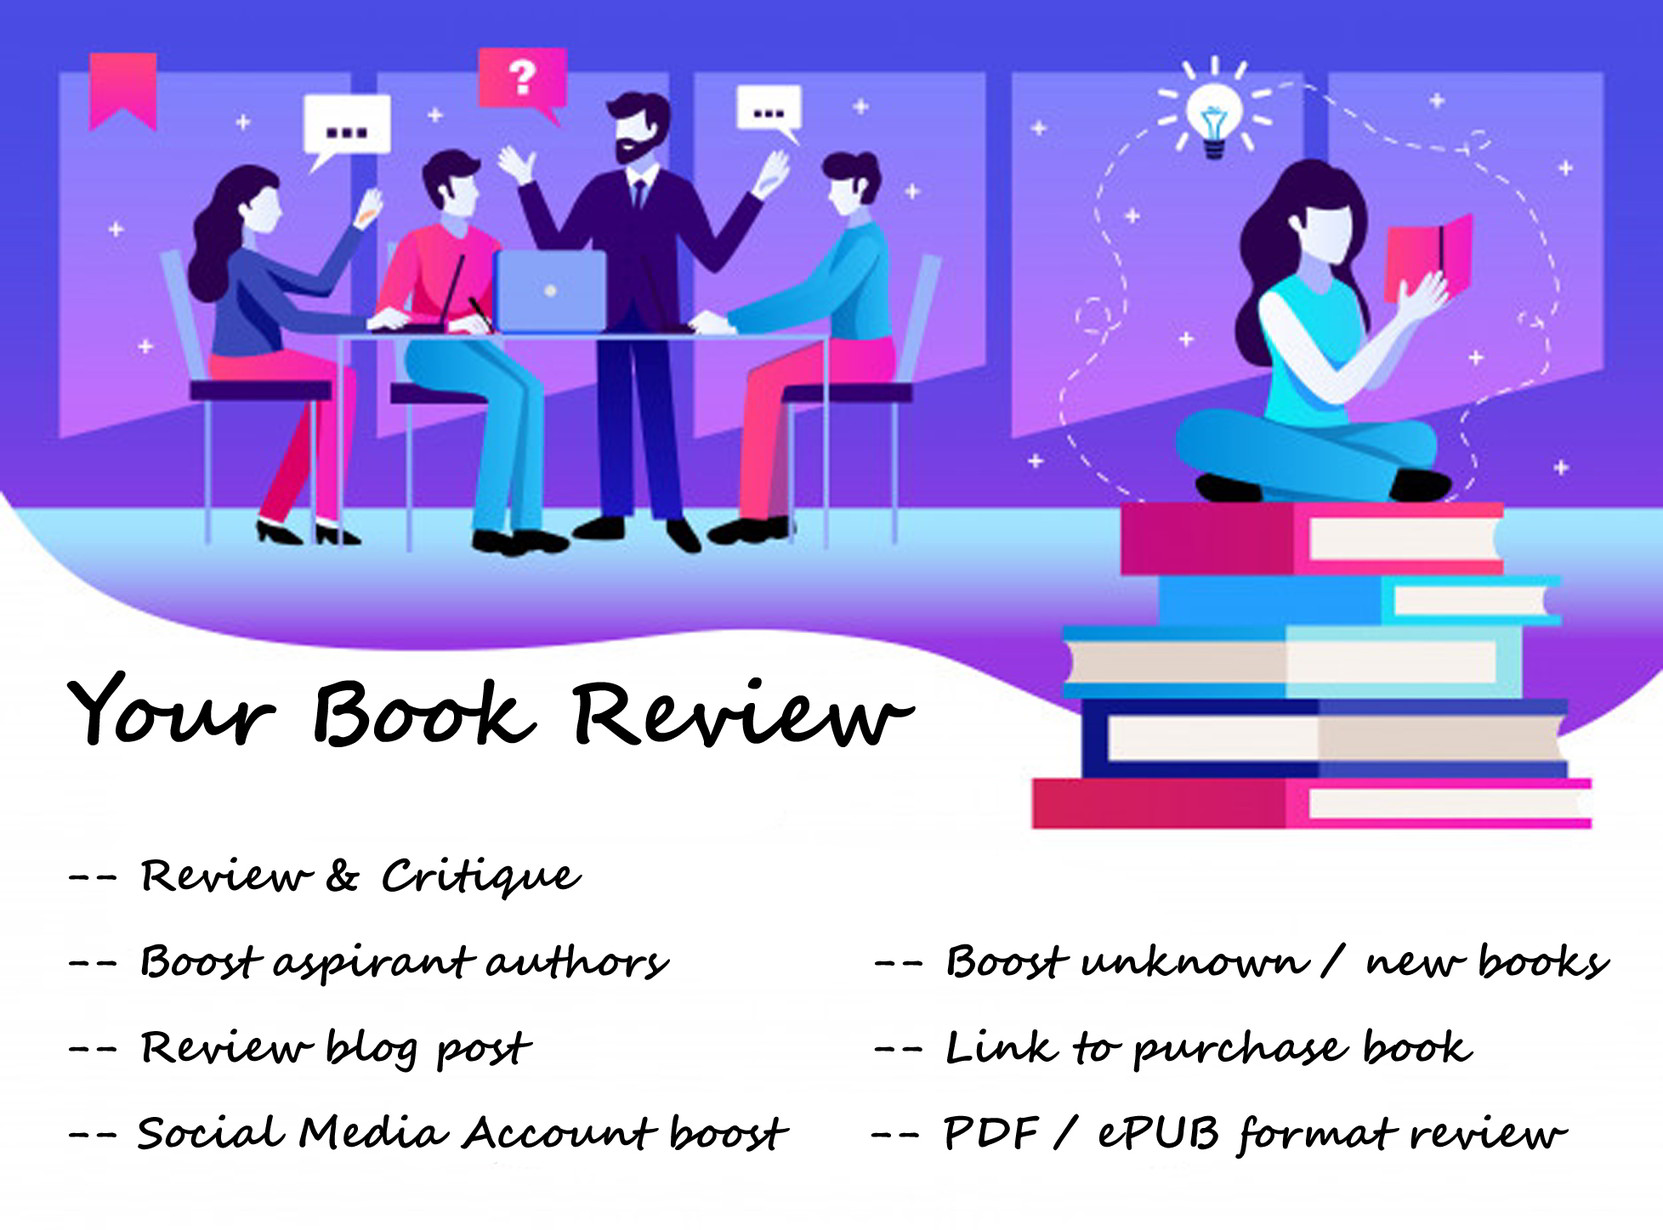 Read and review your book and compose an unbiased critique, FiverrBox